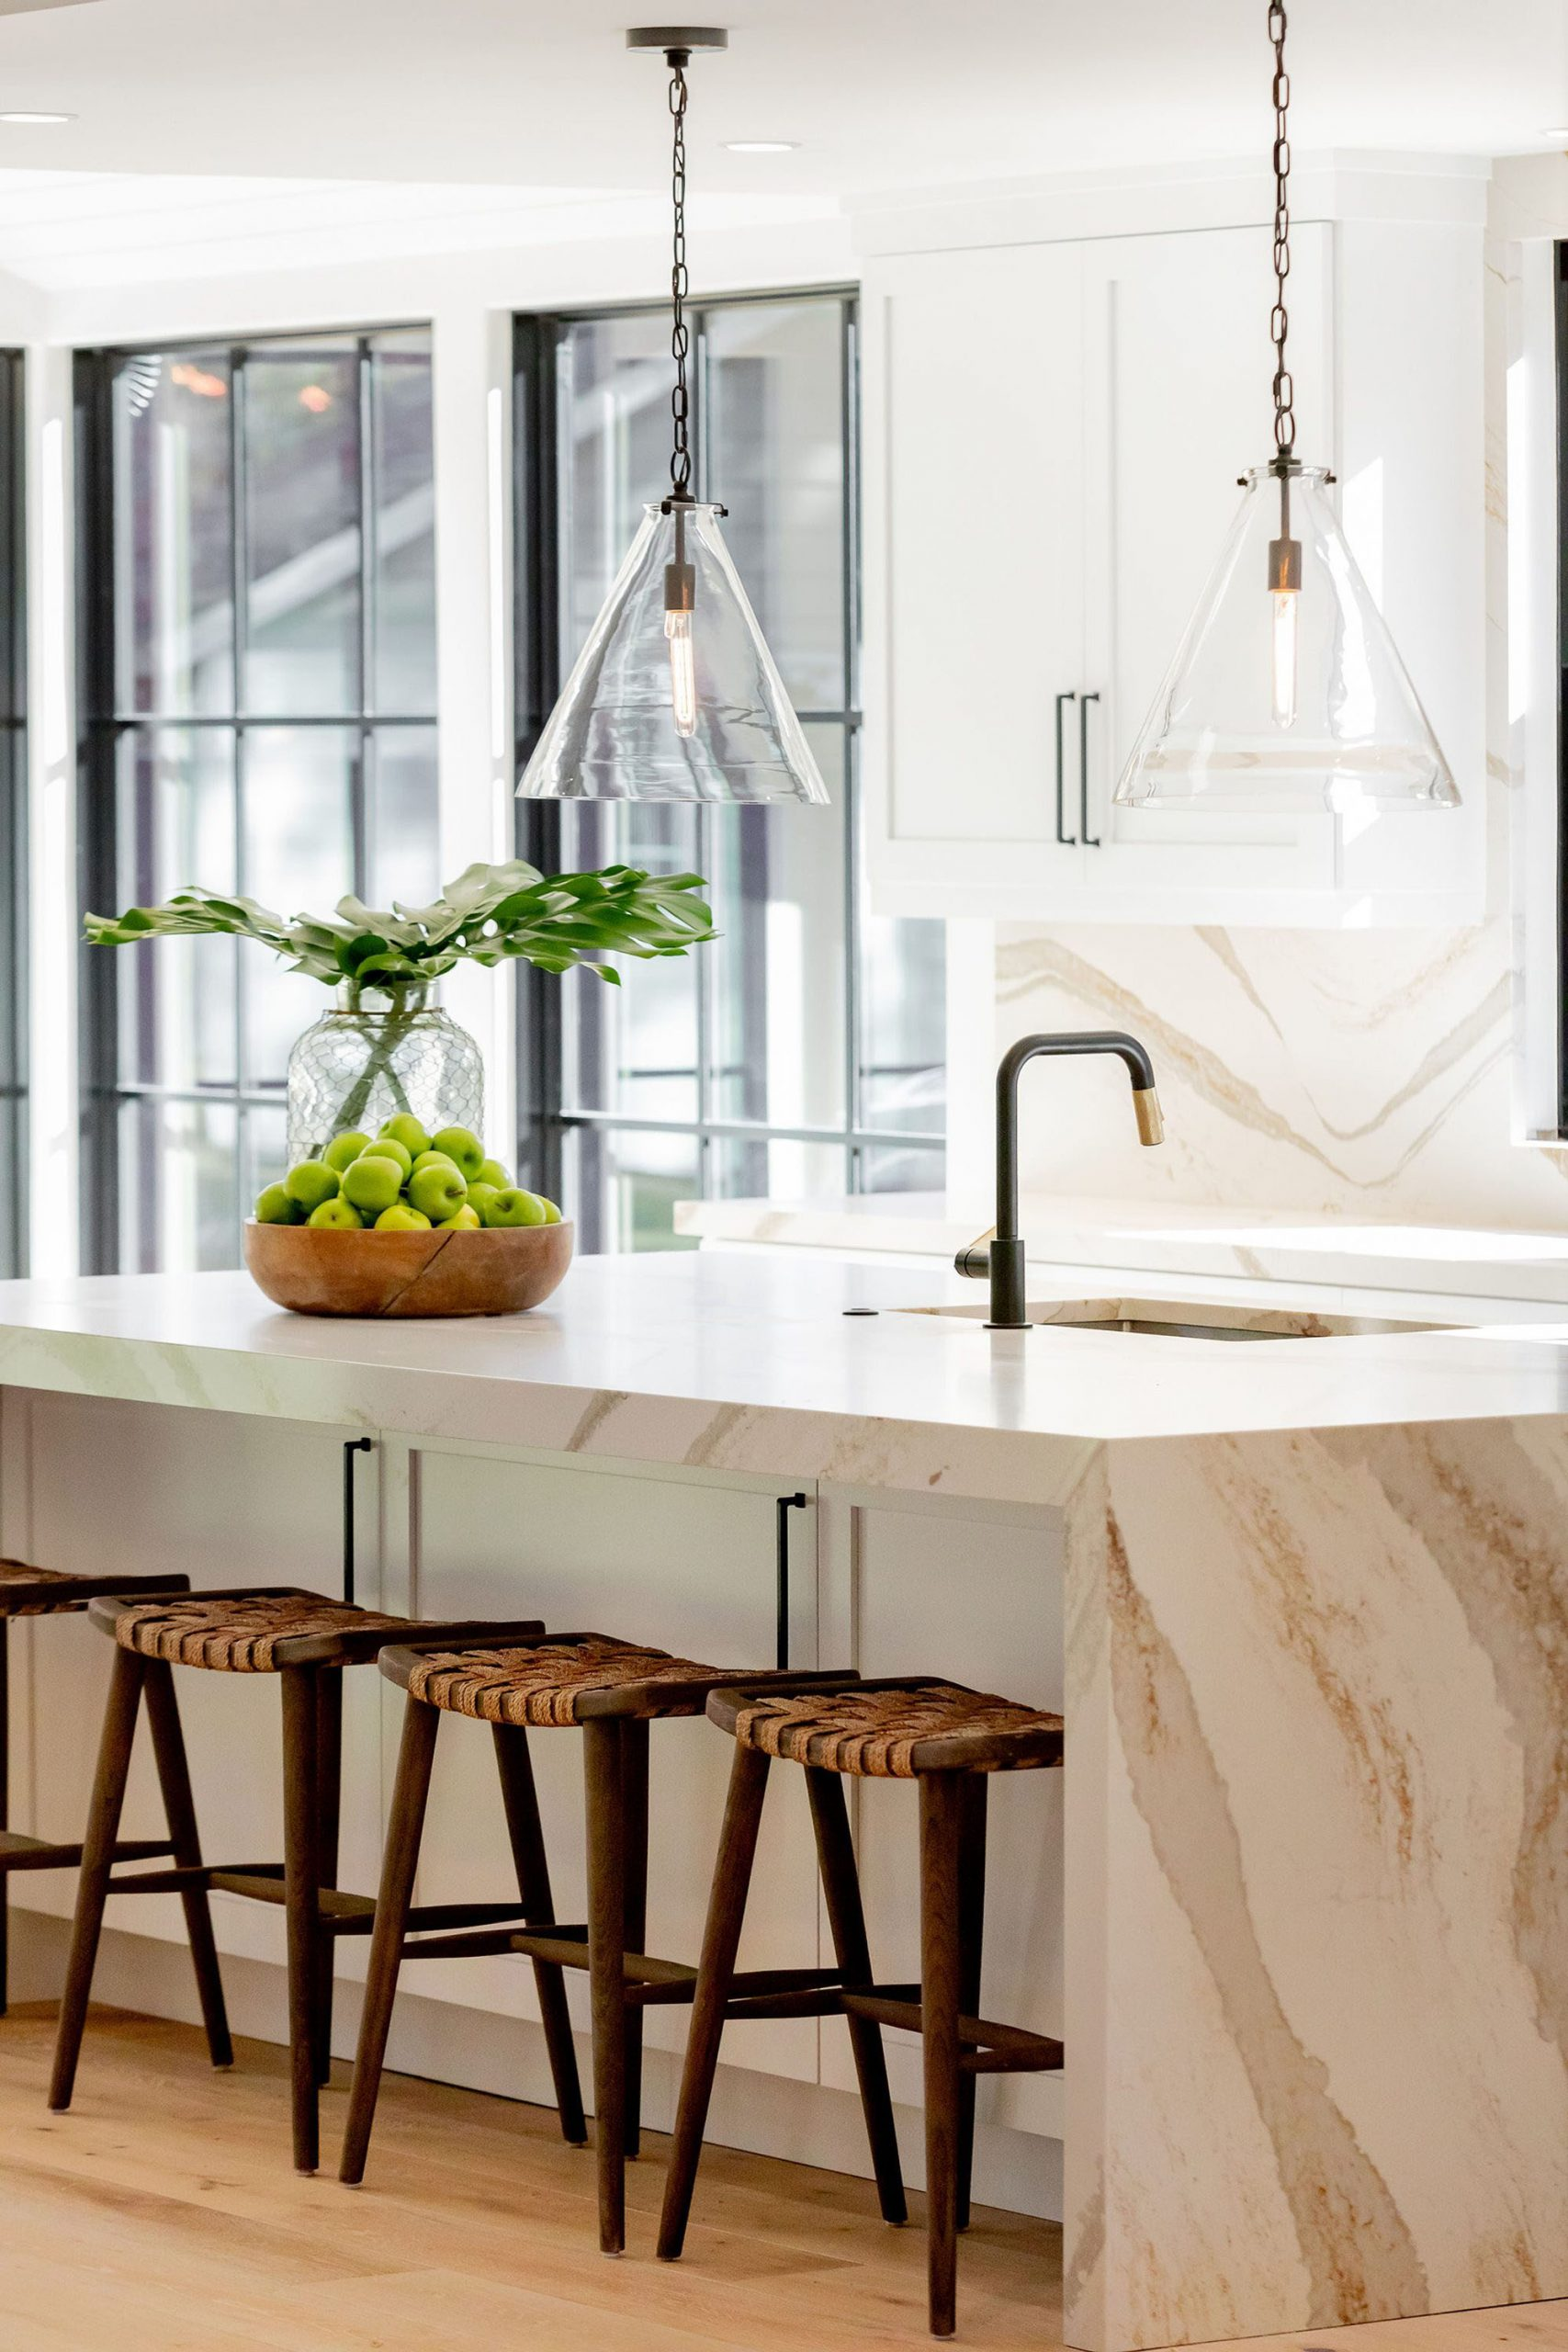 Kitchen island with marble quartz countertop and matching sides.